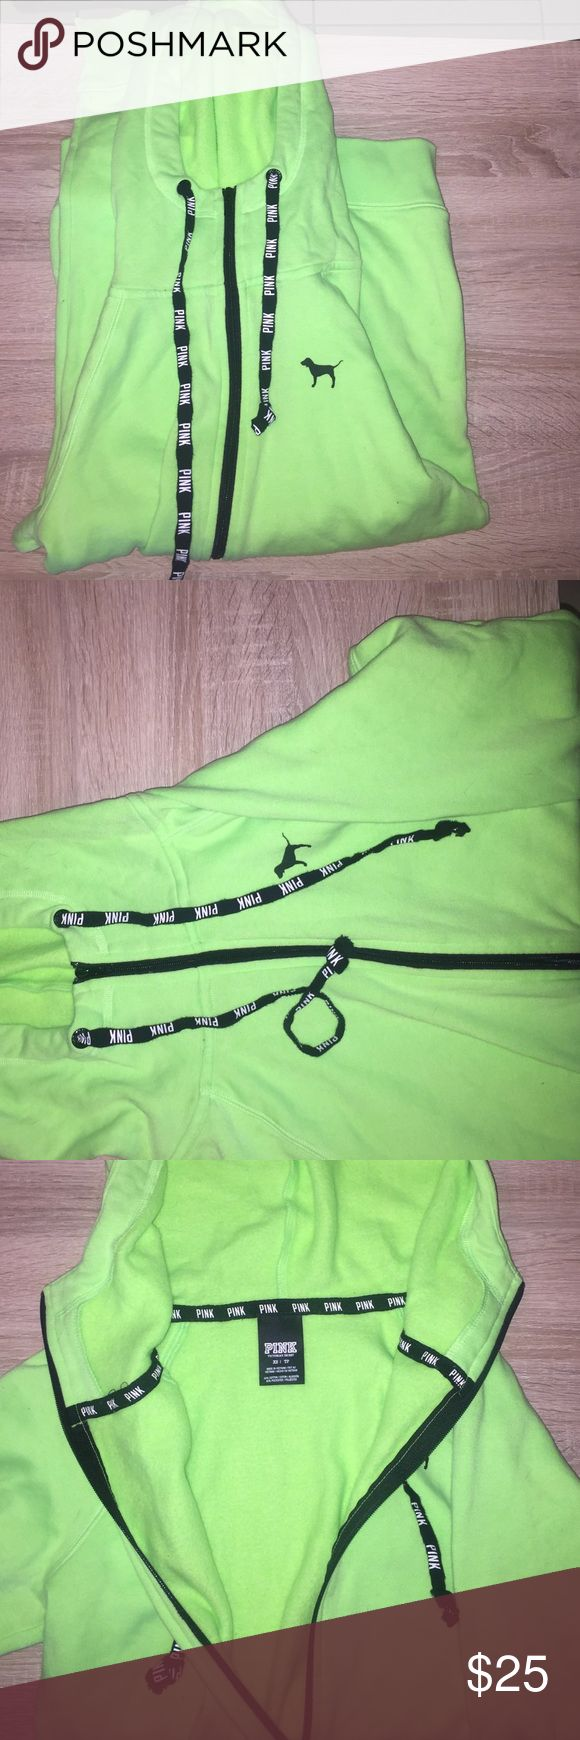 VICTORIA SECRET lime green zip up hoodie Like green zip up hoodie with black zipper, worn once, very soft inside PINK Victoria's Secret Other